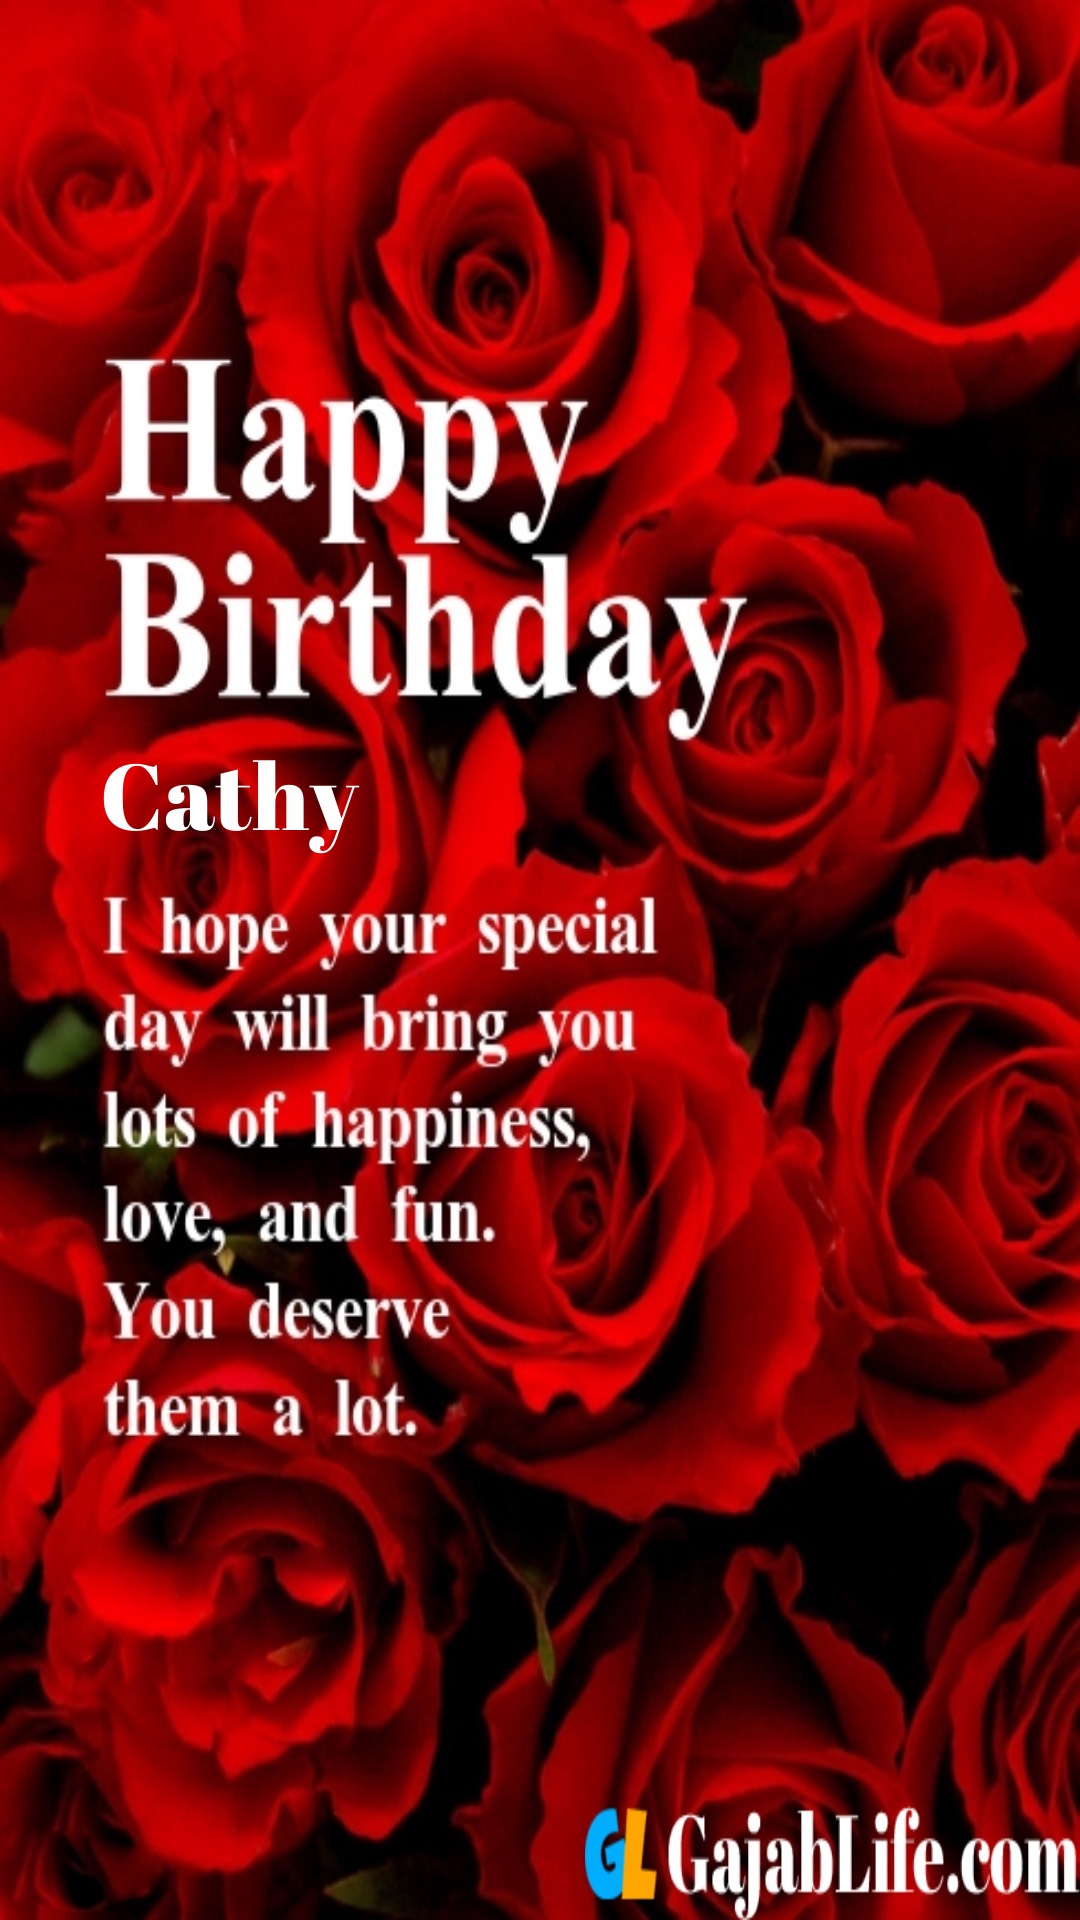 Happy Birthday Cathy : happy, birthday, cathy, Happy, Birthday, Greeting, Cathy, Quotes, Images